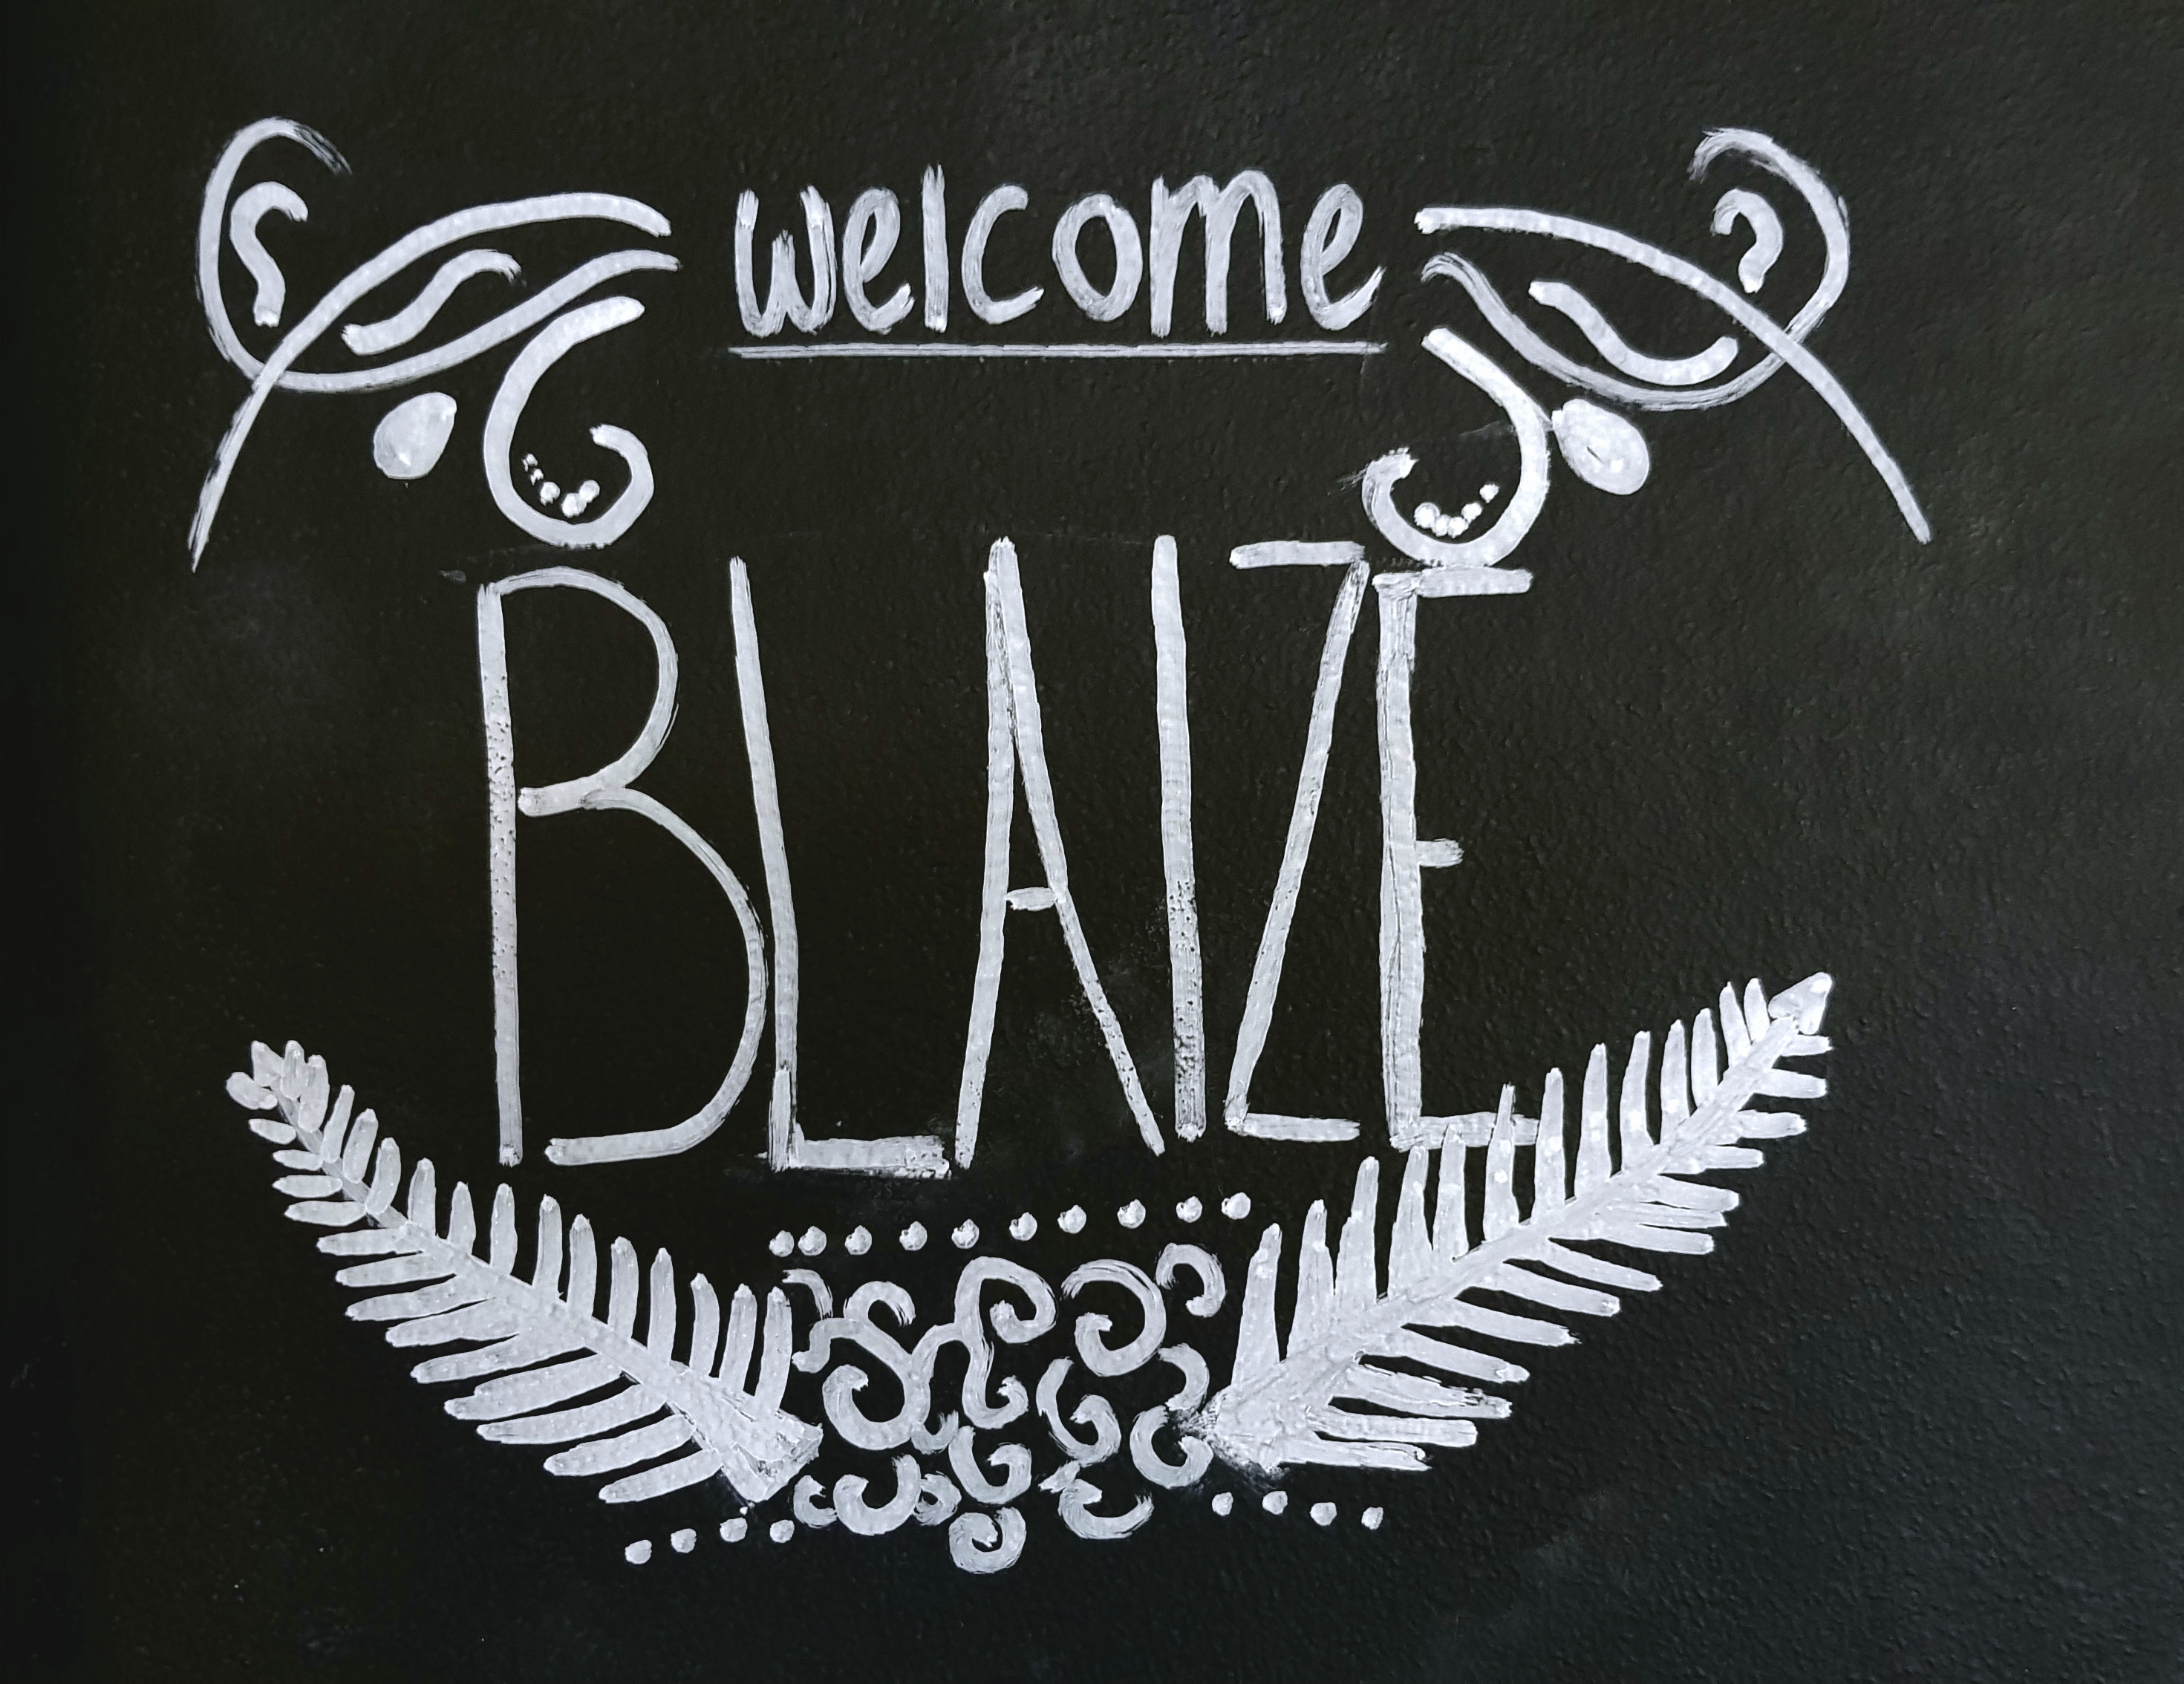 Welcome to Amazee Labs Blaize